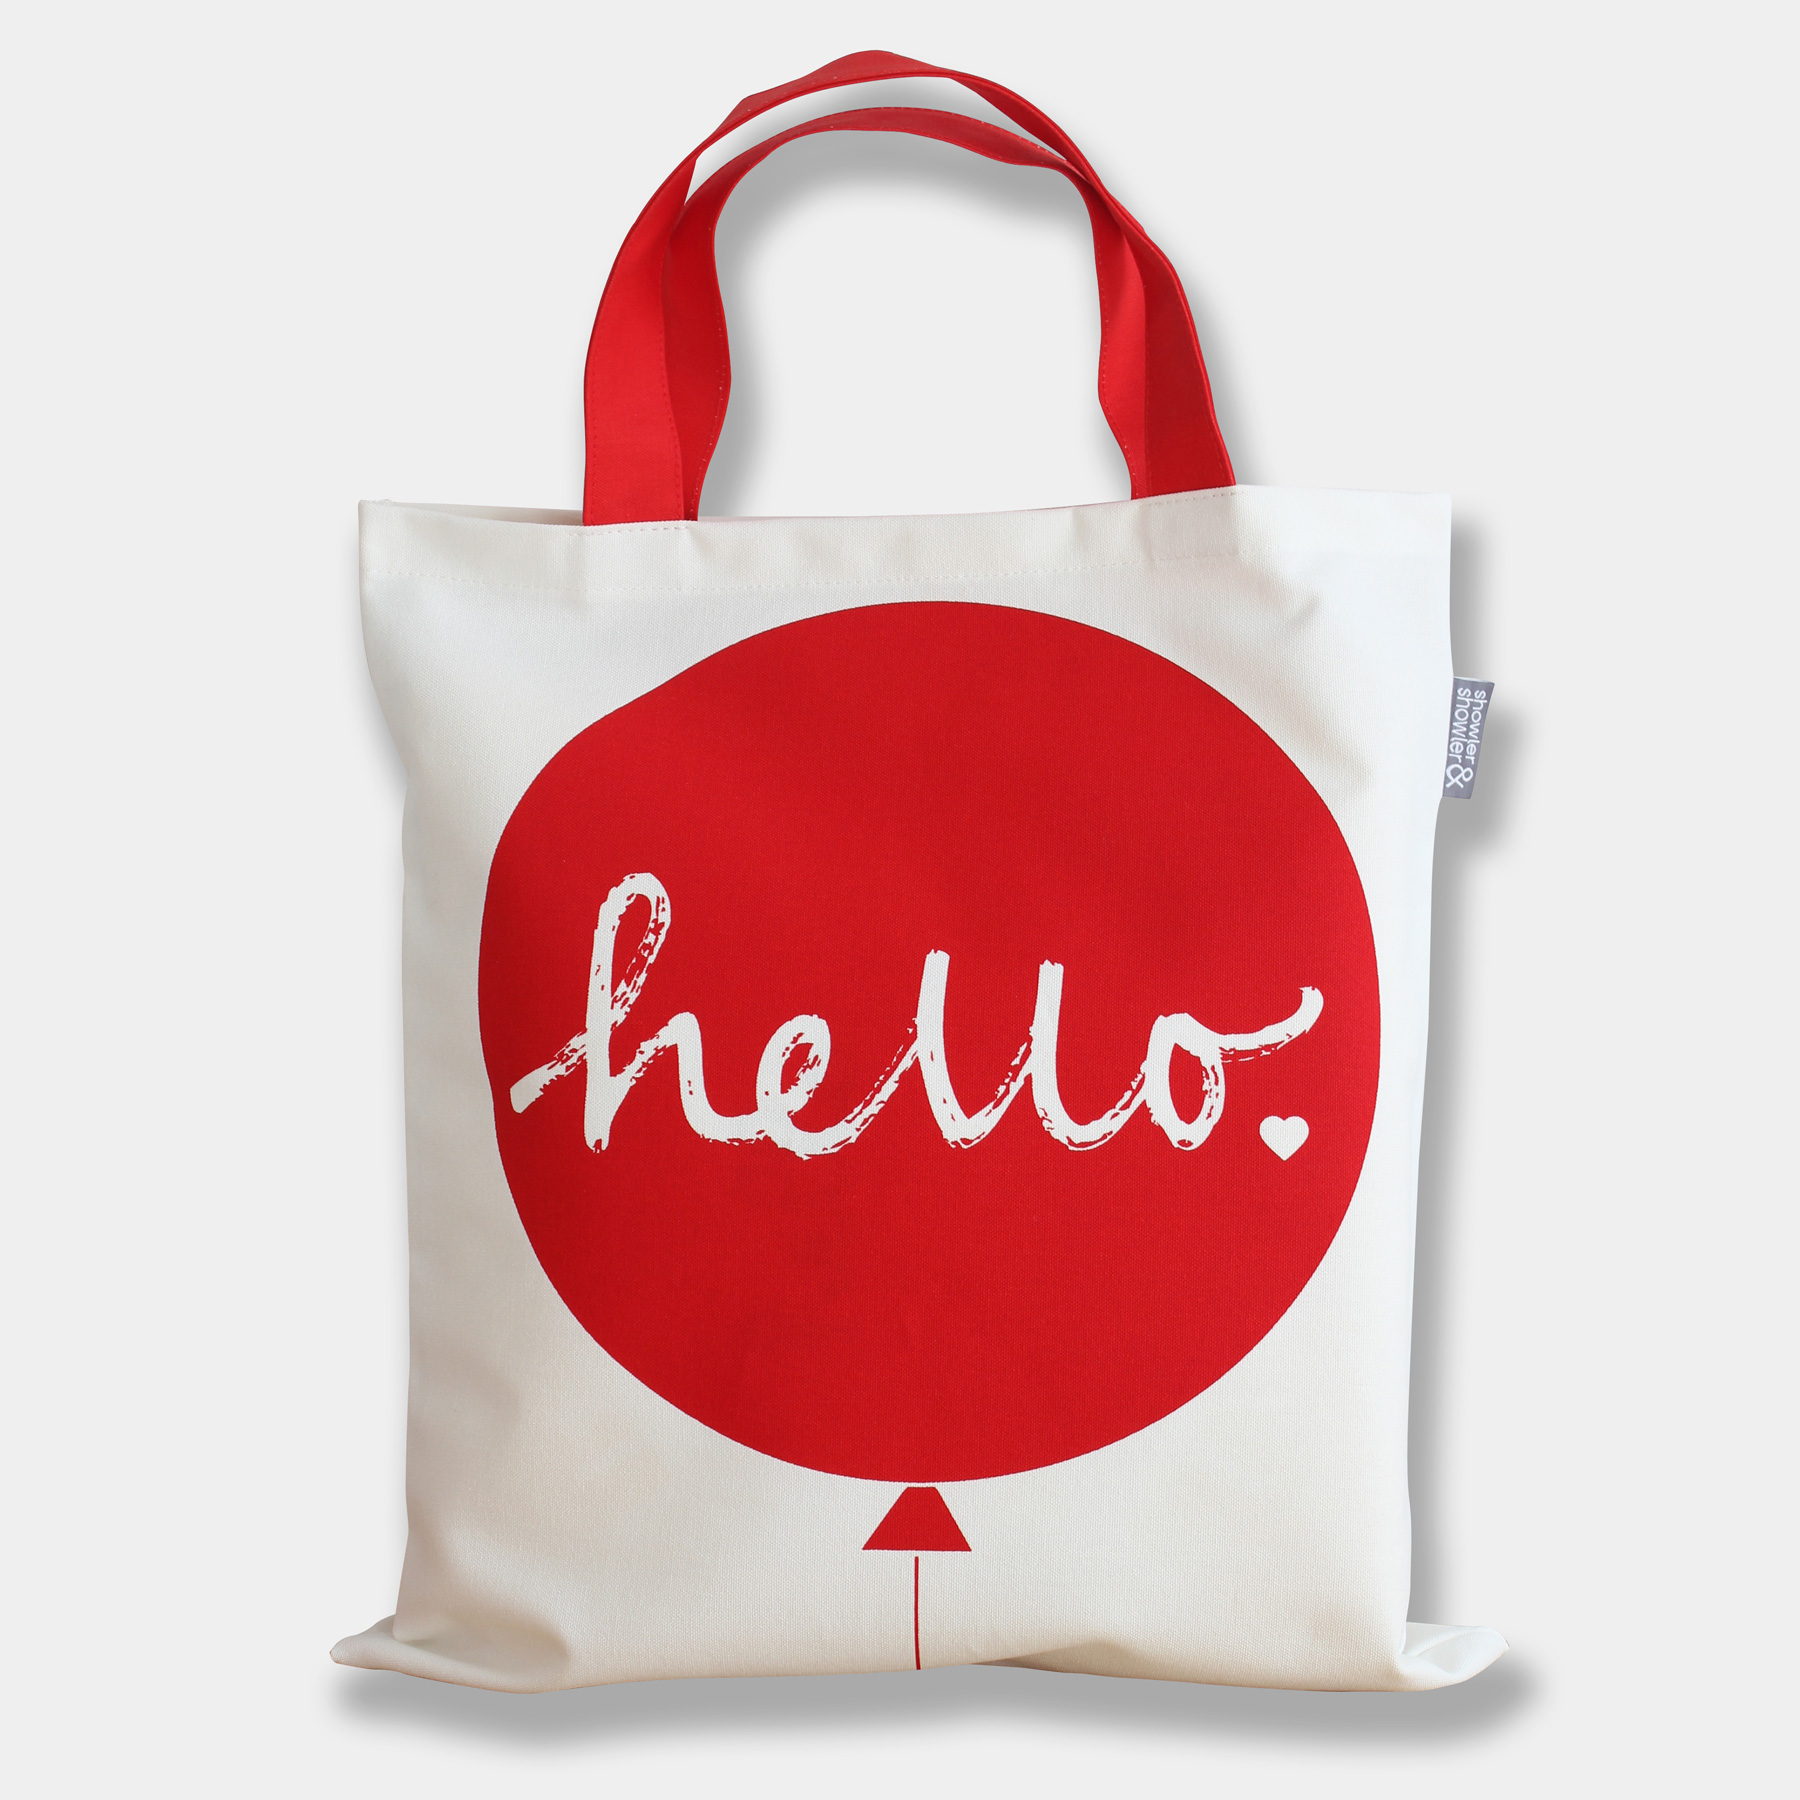 Hello-Balloon-Red-Bag.jpg